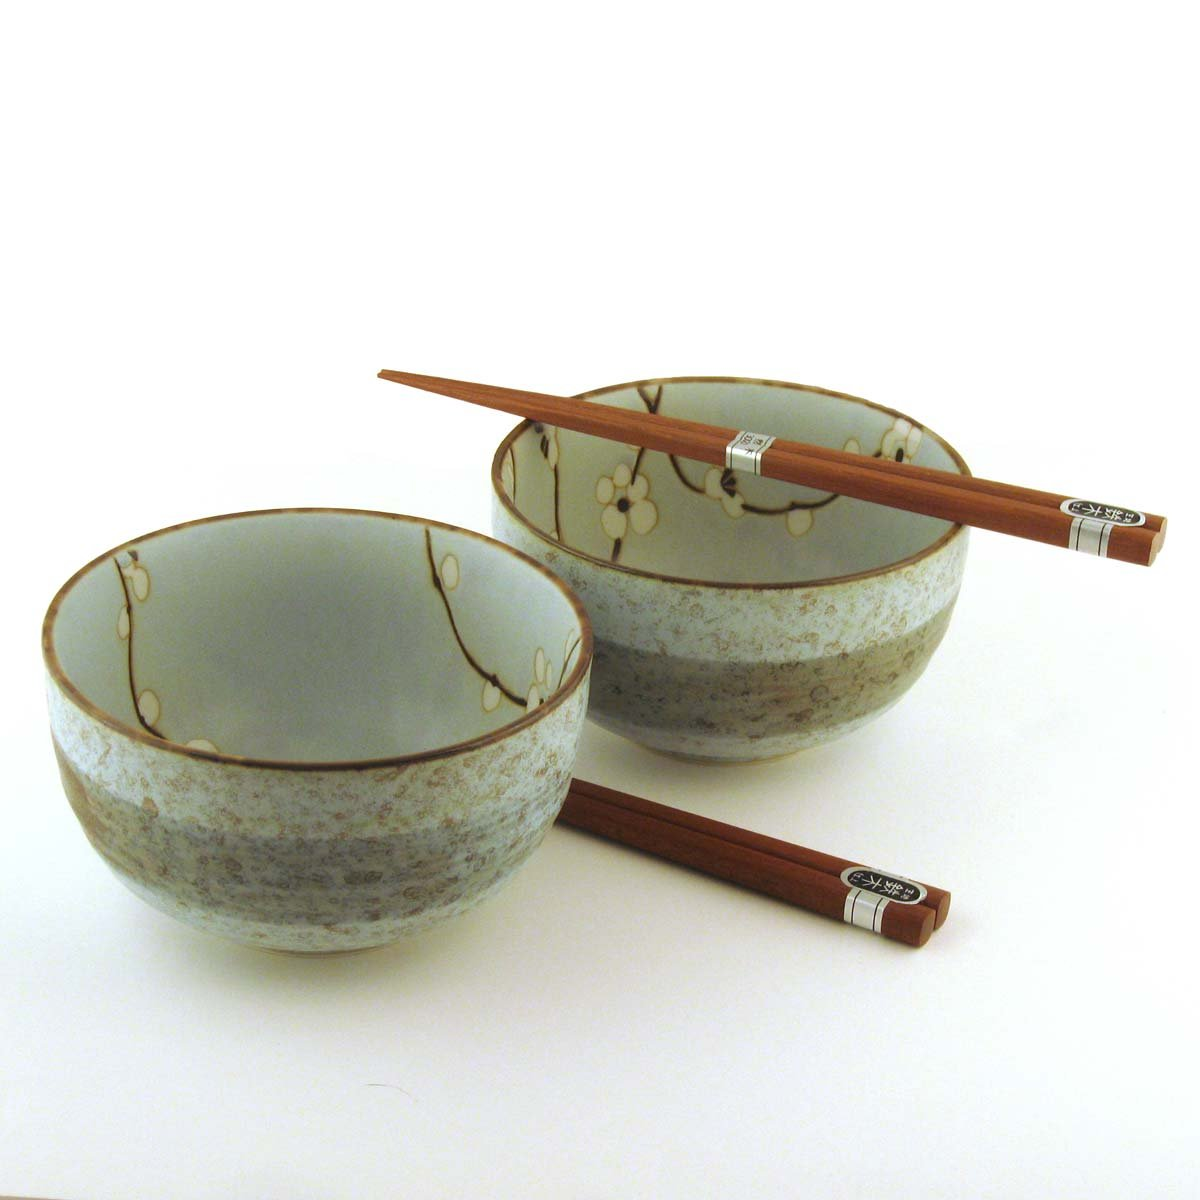 Japanese Spring Blossom Bowl And Chopsticks Set includes 2 Bowls and 2 Sets of Chopsticks MIYA SYNCHKG013259